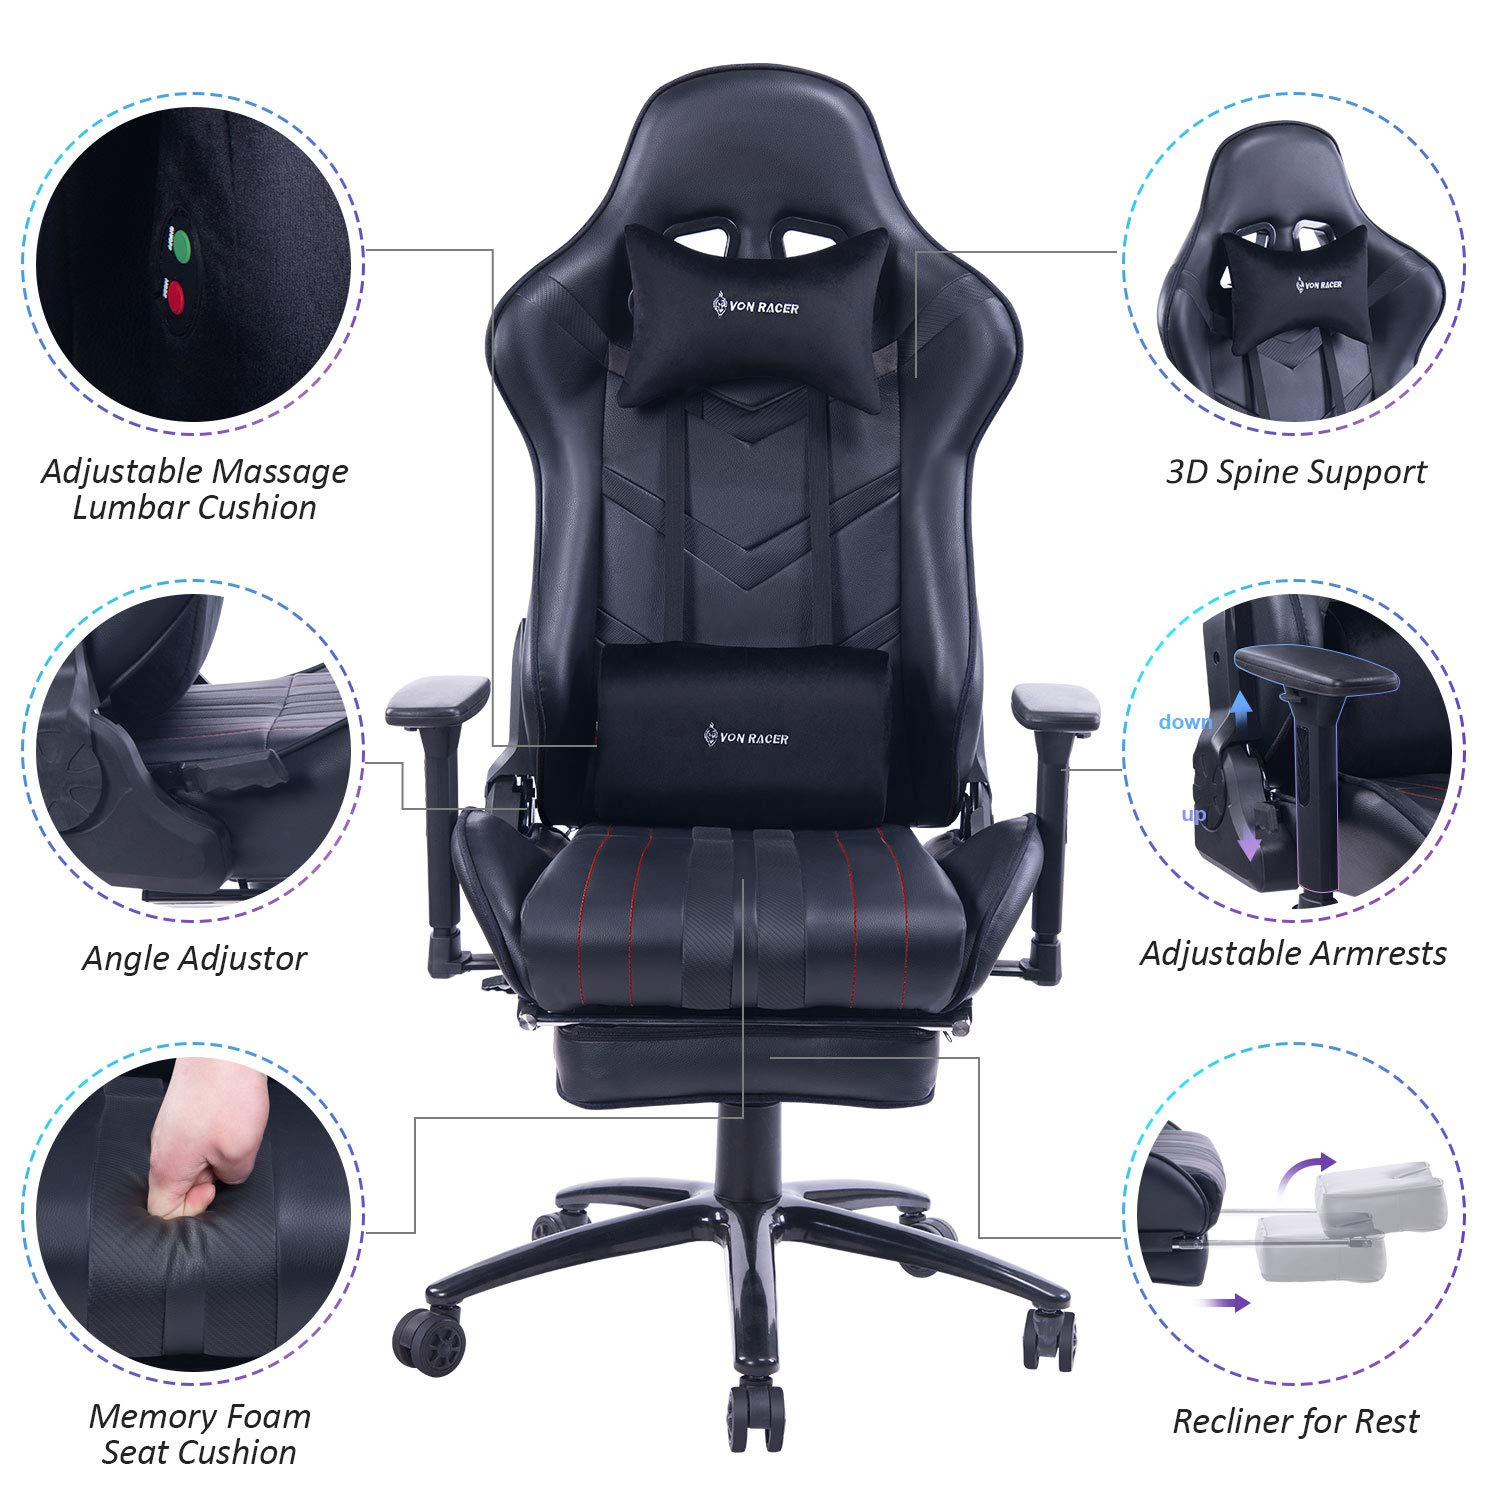 outlet online on feet images of fashion style 3 Best Gaming Massage Chairs On Amazon! | Massagers-And-More